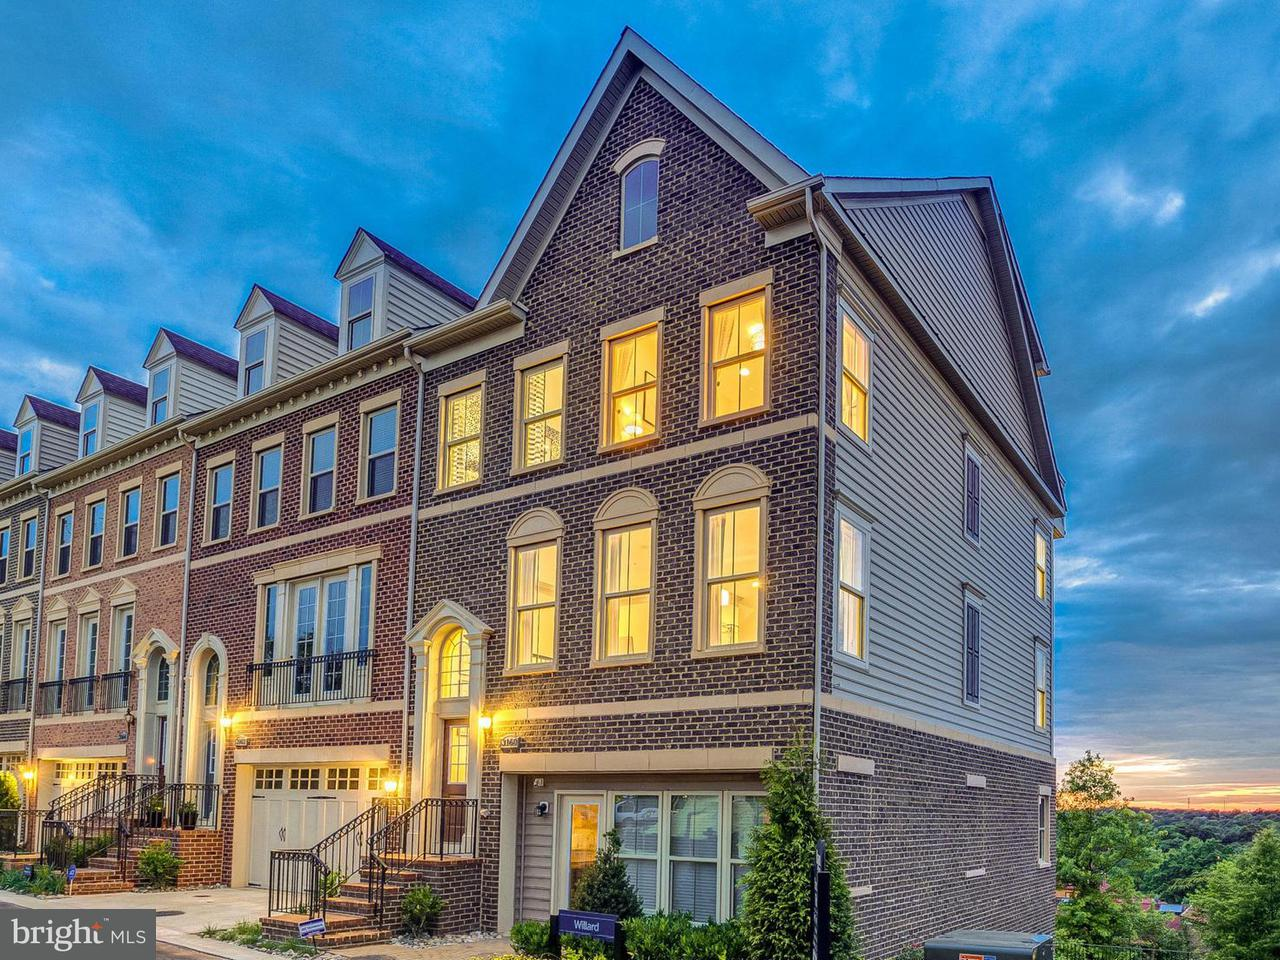 Townhouse for Sale at 2602 COLEMAN LN NE 2602 COLEMAN LN NE Washington, District Of Columbia 20018 United States